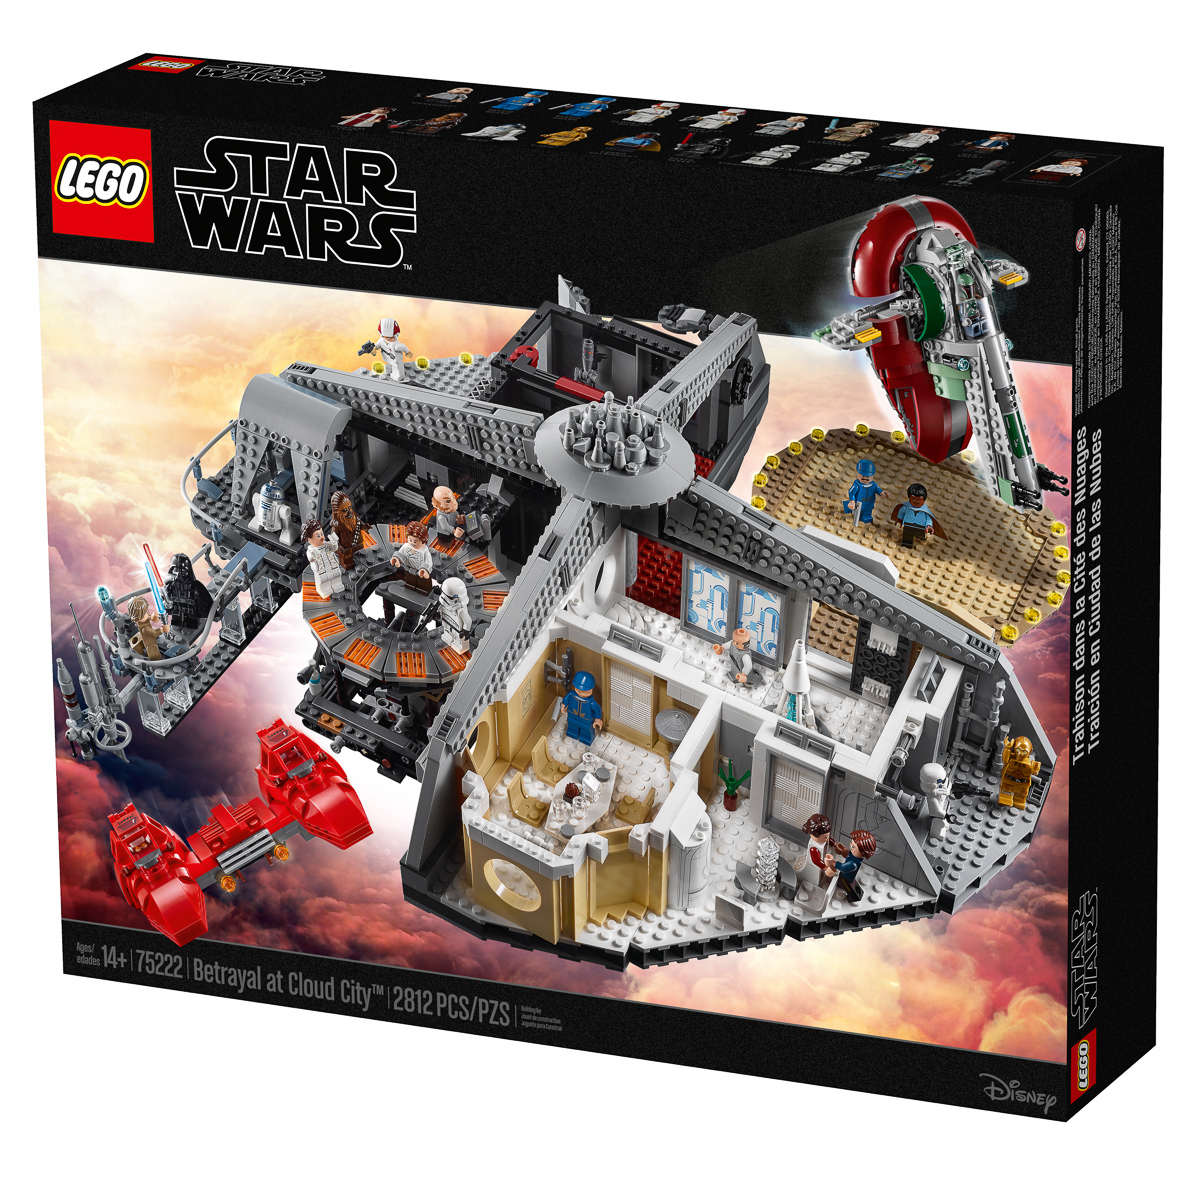 LEGO Star Wars   The Rambling Brick It was a long  long time ago  but not too far away  LEGO Starwars  Minifigures still had yellow faces  Unless they wore helmets